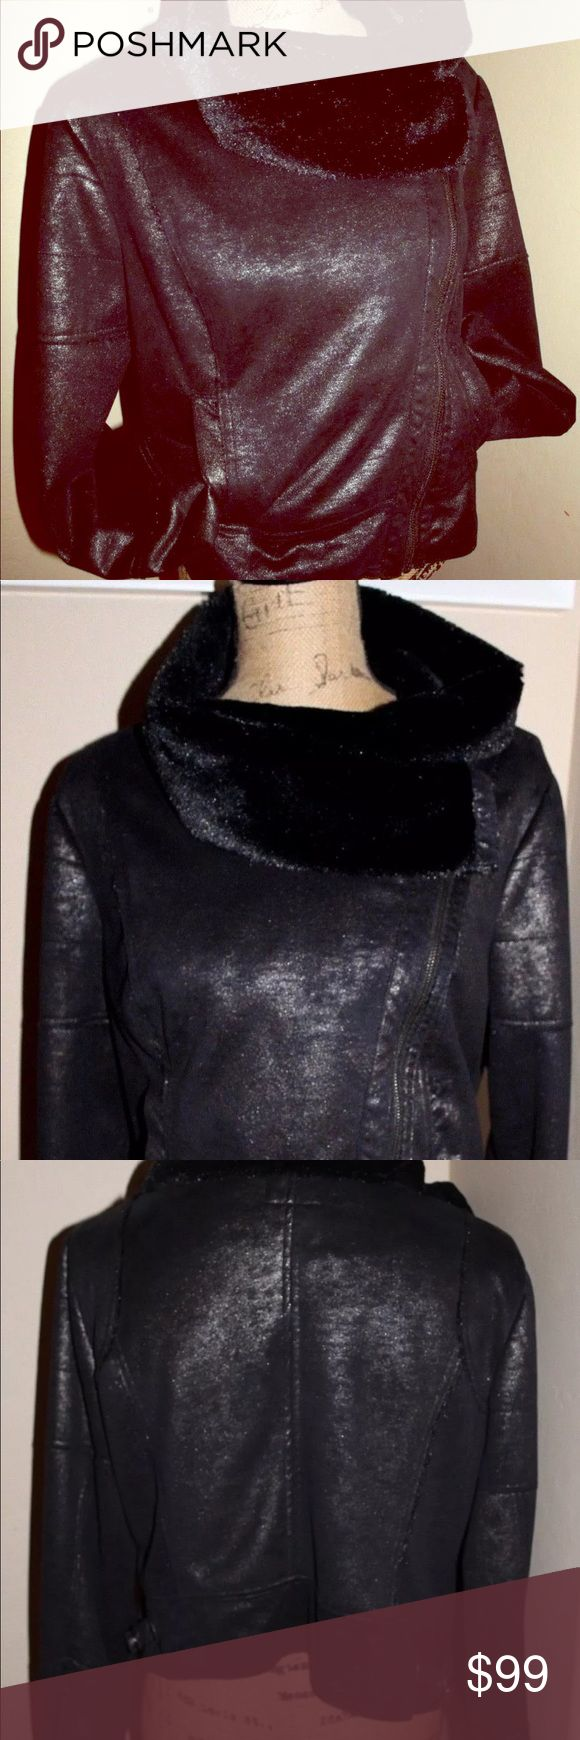 Bebe faux fur zip up black shimmer biker jacket L Style 107ay102n580 Bebe Stunning Faux Fur Lined Silver Suede Jacket with Glitter Under-Sheen and ADJUSTABLE Fitted Waist. 100% Polyster and Vegan Friendly. Zip up for closure and  at the arms. Side pockets. Super cozy and warm inner lining. EXCELLENT USED CONDITION. RARE FIND!   designer BEBE  Asymmetrical Crop Fur Lined Jacket  Women's Size Large bebe Jackets & Coats Utility Jackets